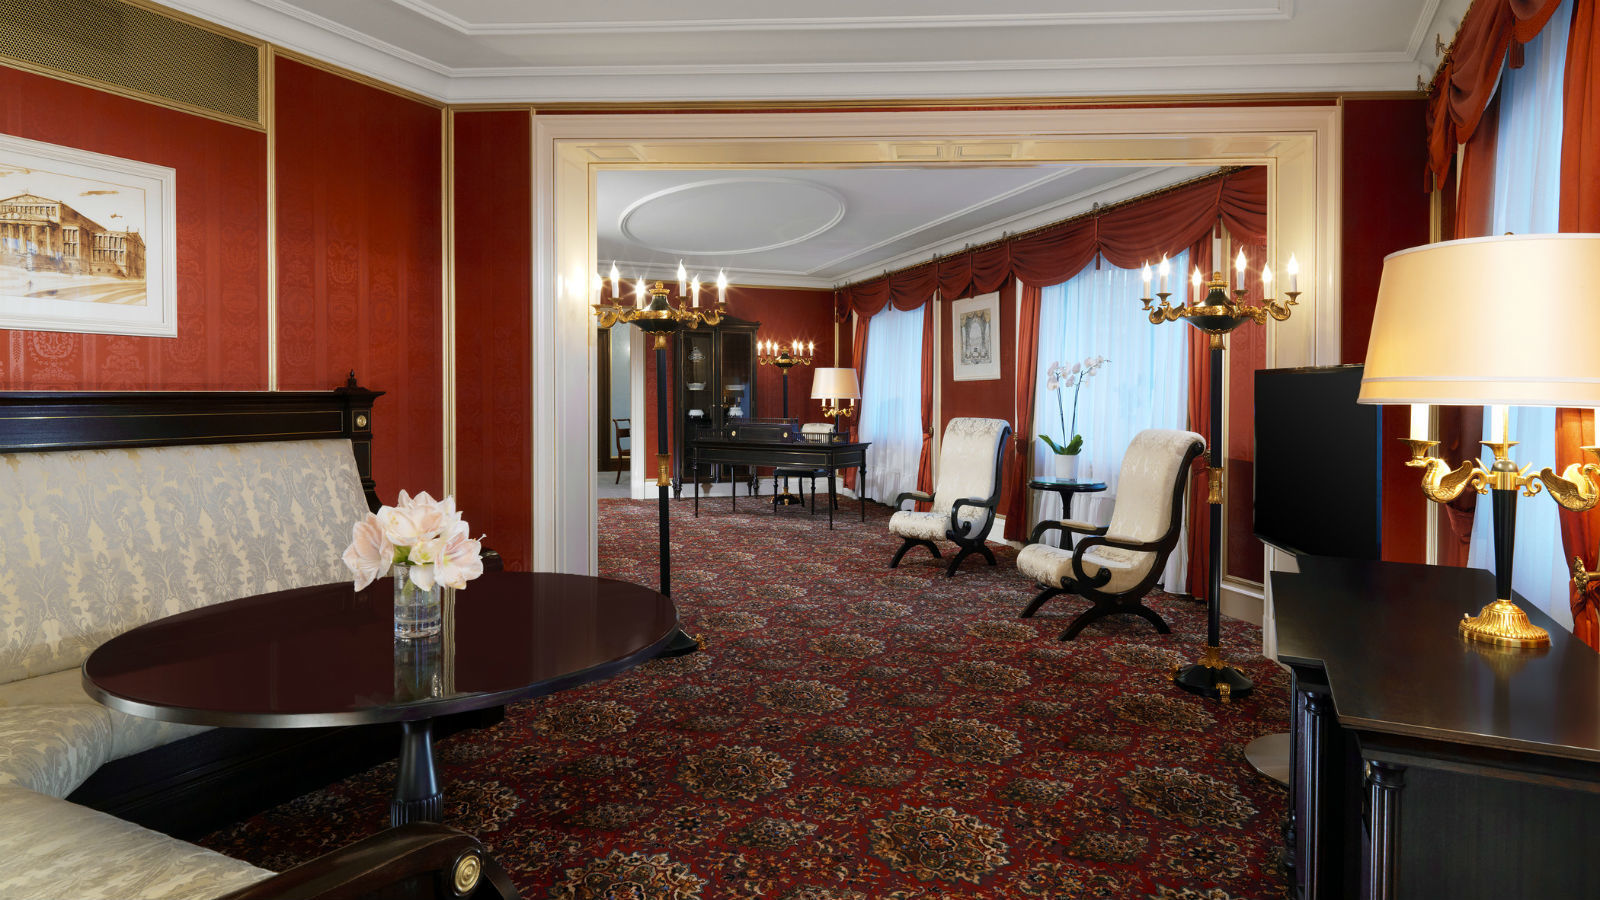 Presidential Suite linving area at The Westin hotel in Berlin